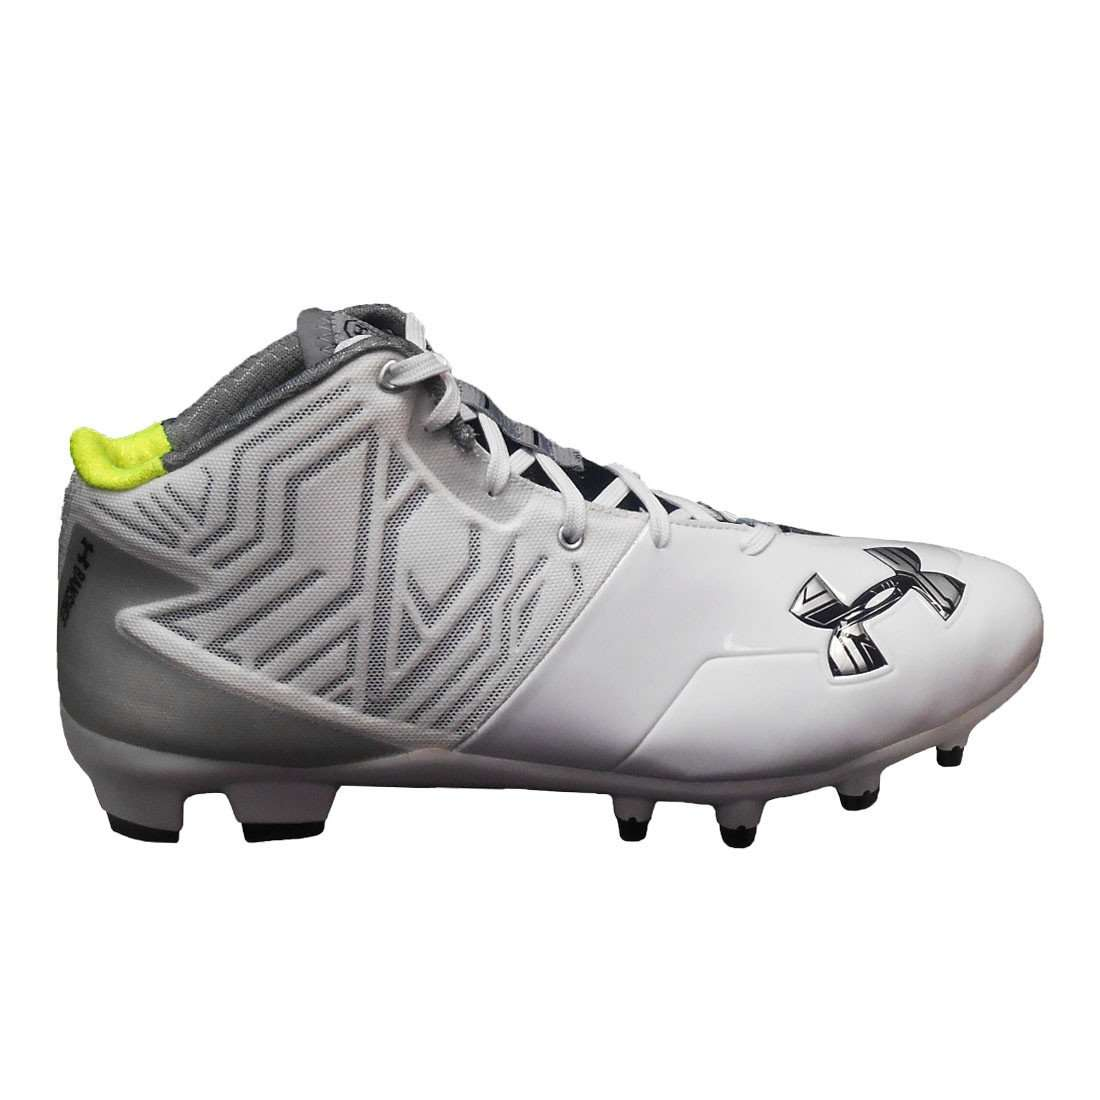 a5189e0ff0f1 Under Armour Team Banshee Mid MC Football Cleats - League Outfitters